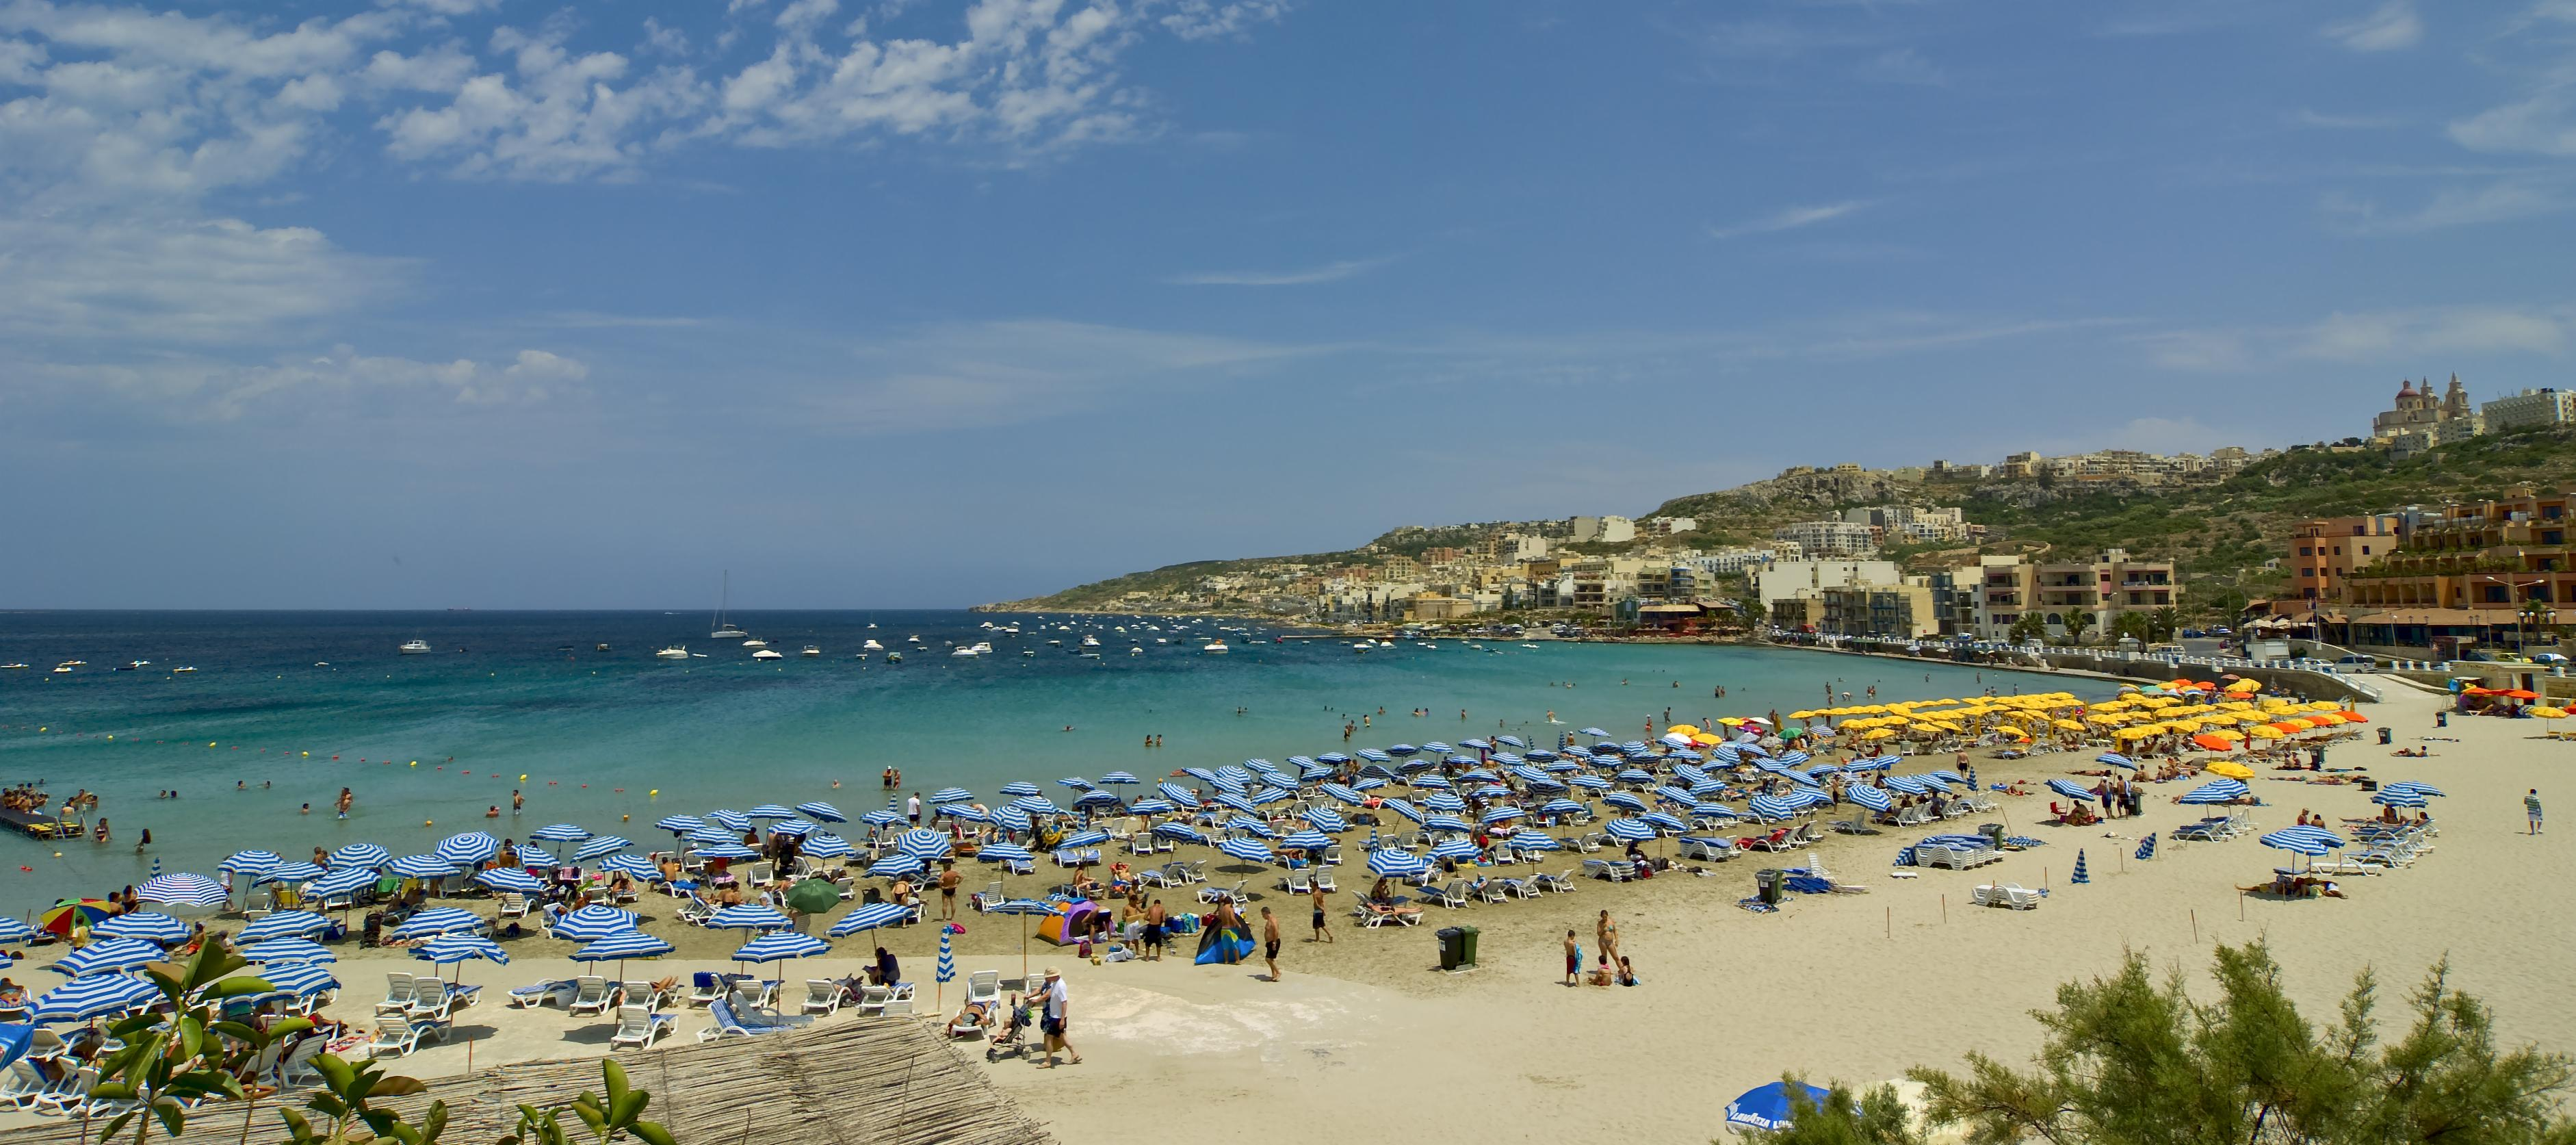 Mellieha Beach also known as Ghadira Bay, in Malta